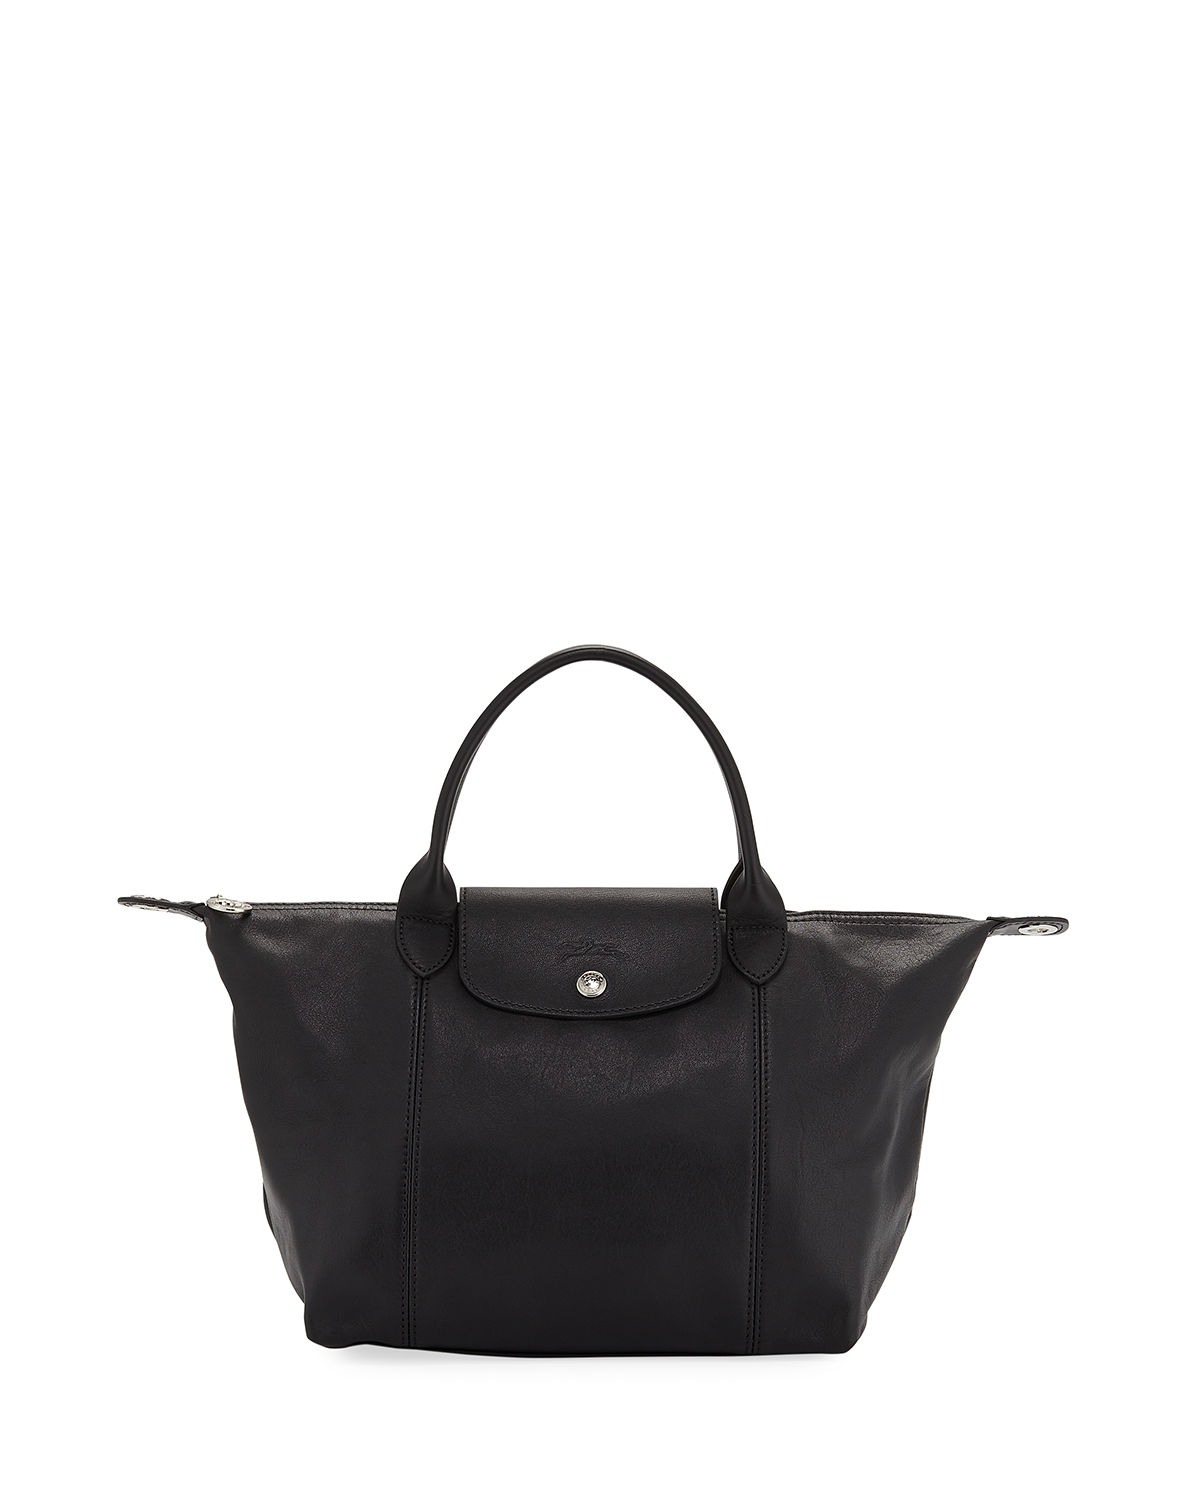 Longchamp Bags Le Pliage Cuir Small Leather Top-Handle Bag with Strap, NERO